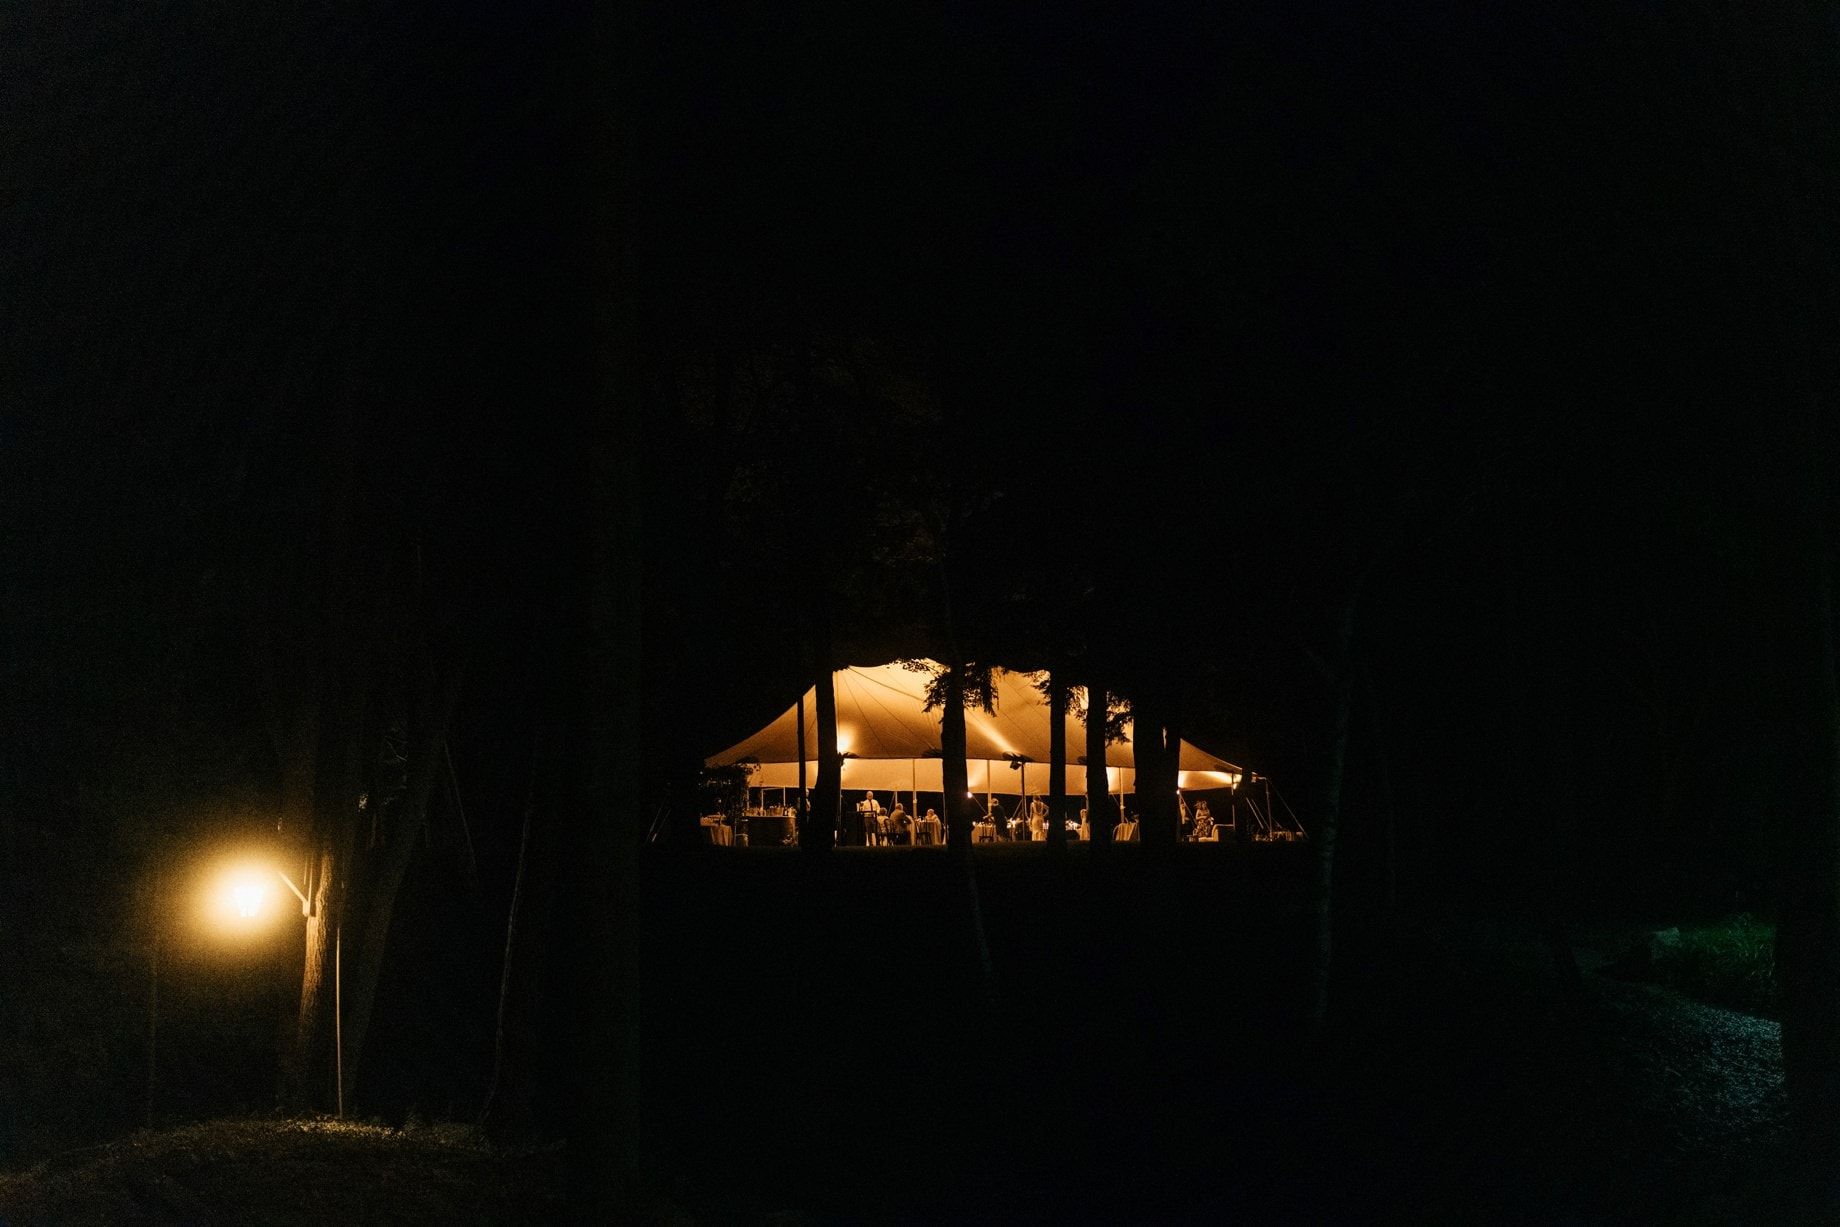 a night shot of a wedding reception tent in the woods